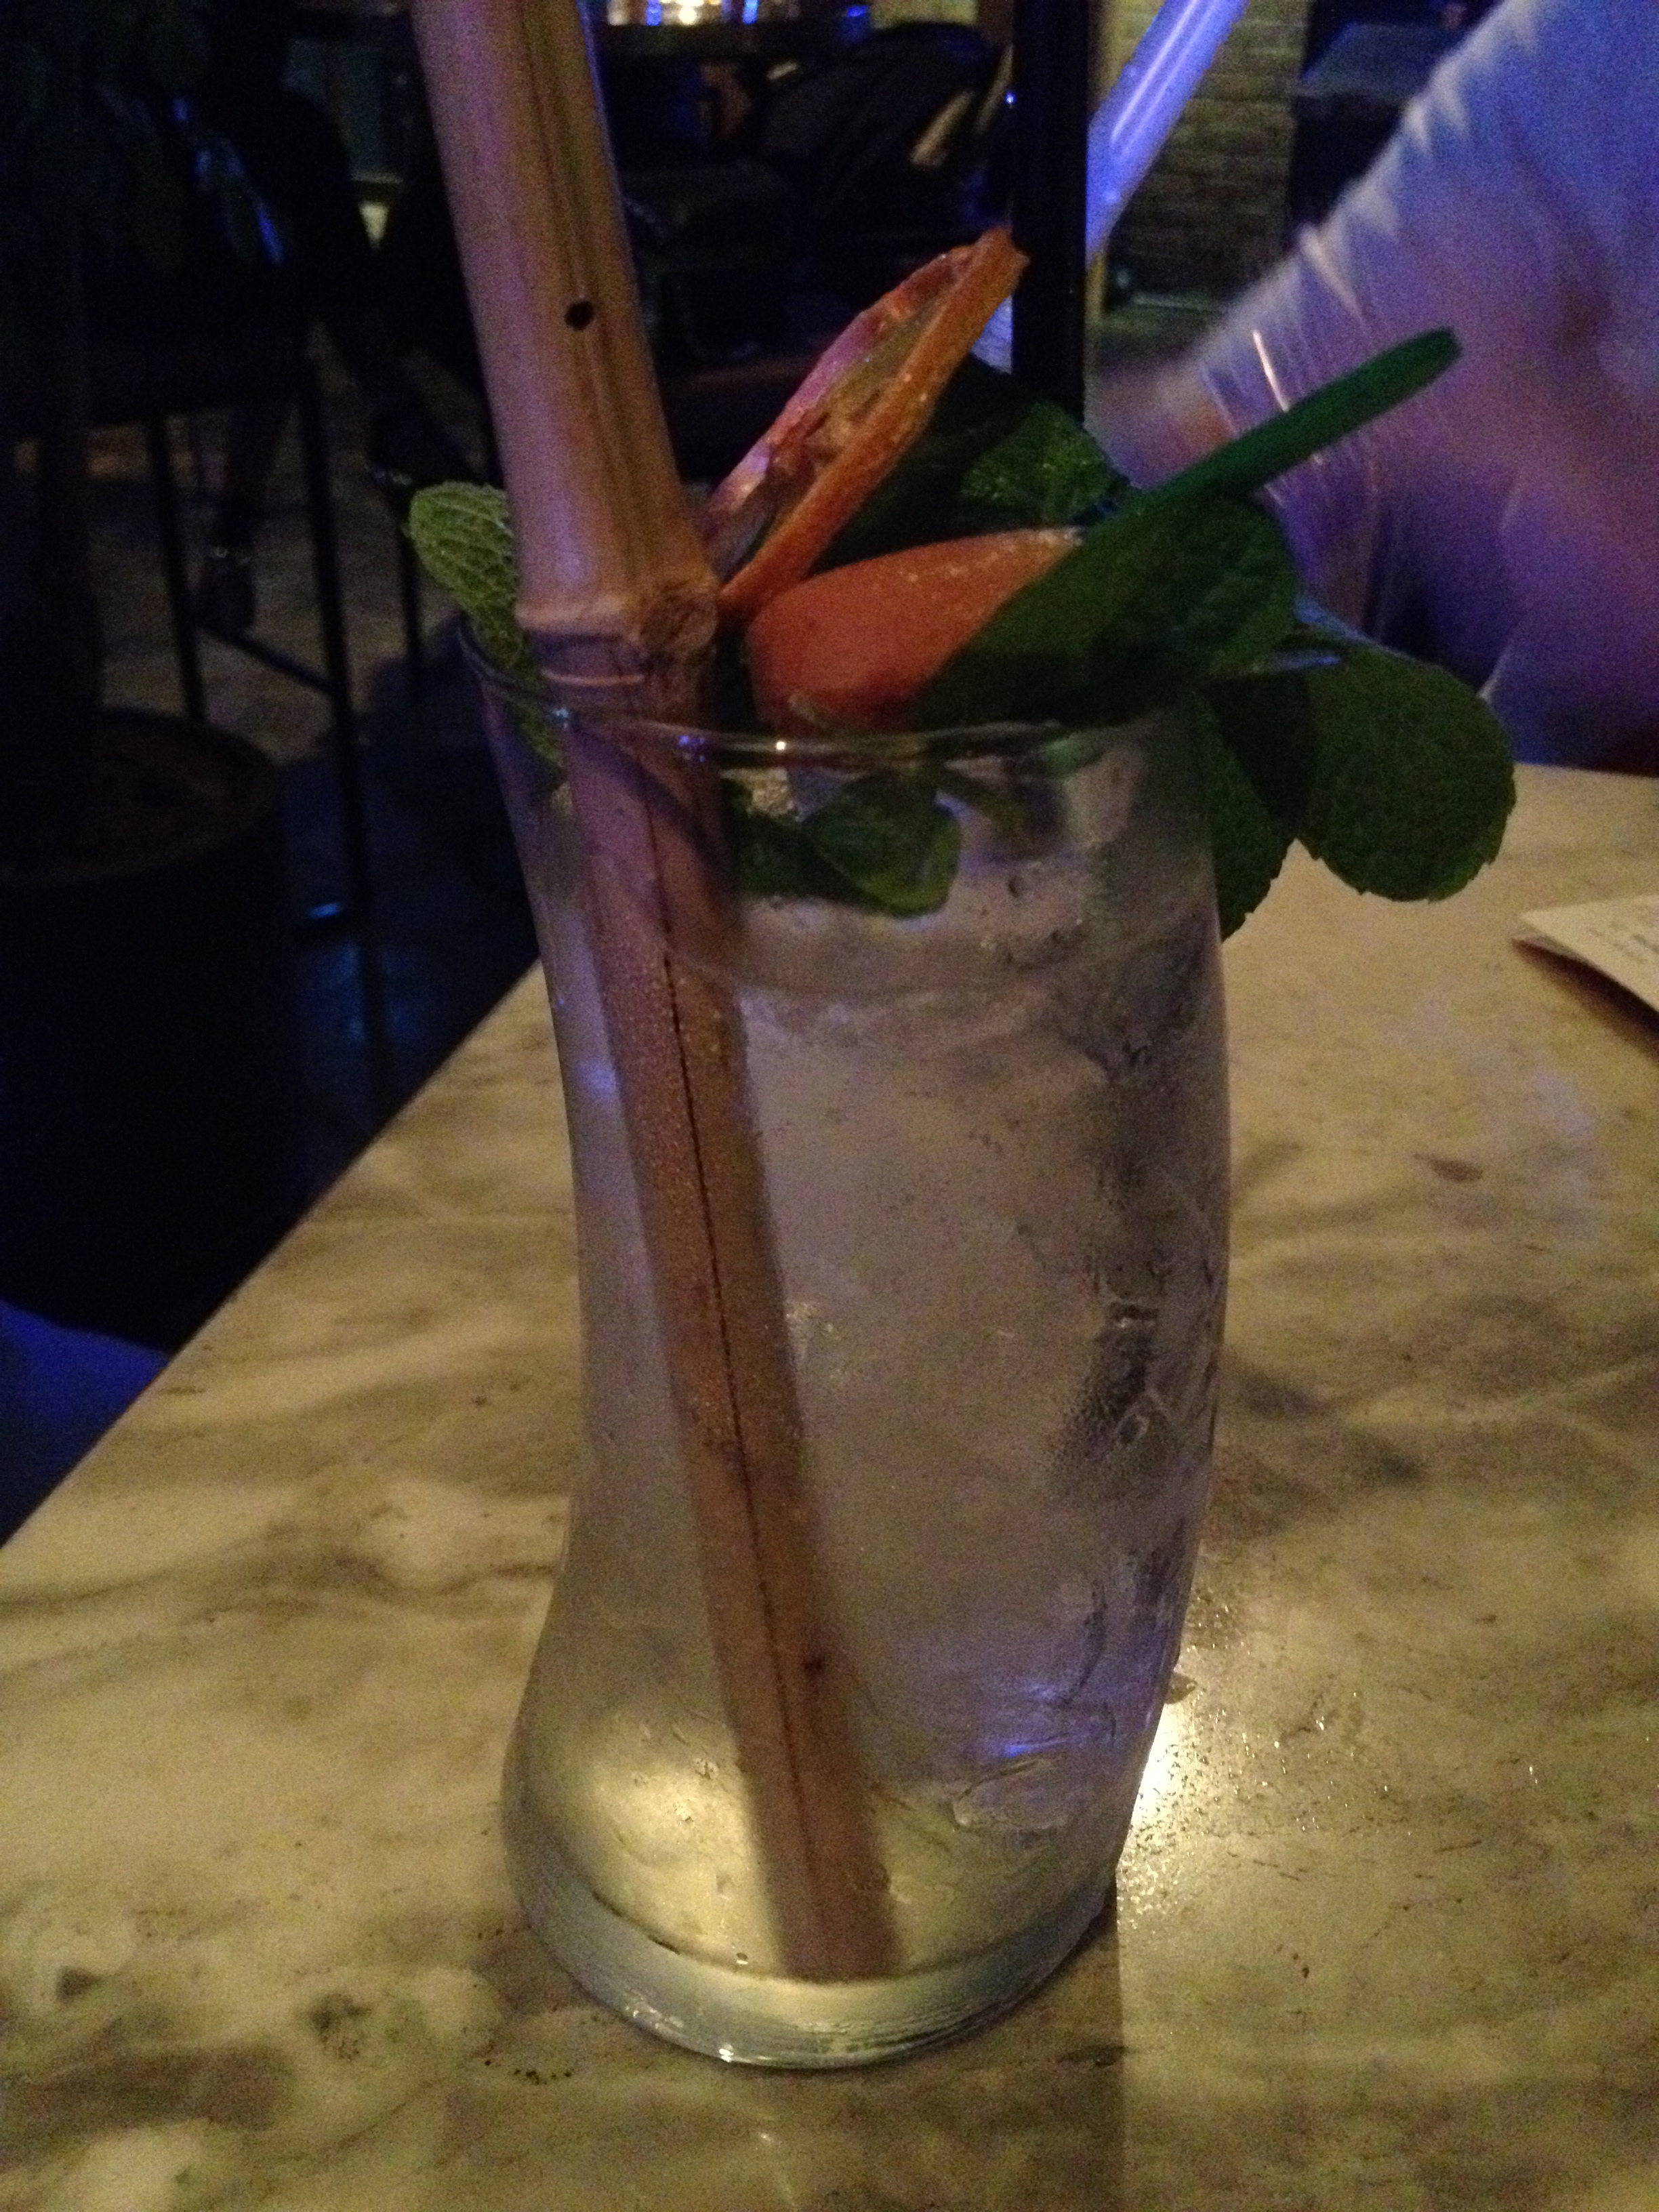 Apple Mojito - good if you like your drinks sweeter. I much prefer the original mojito!